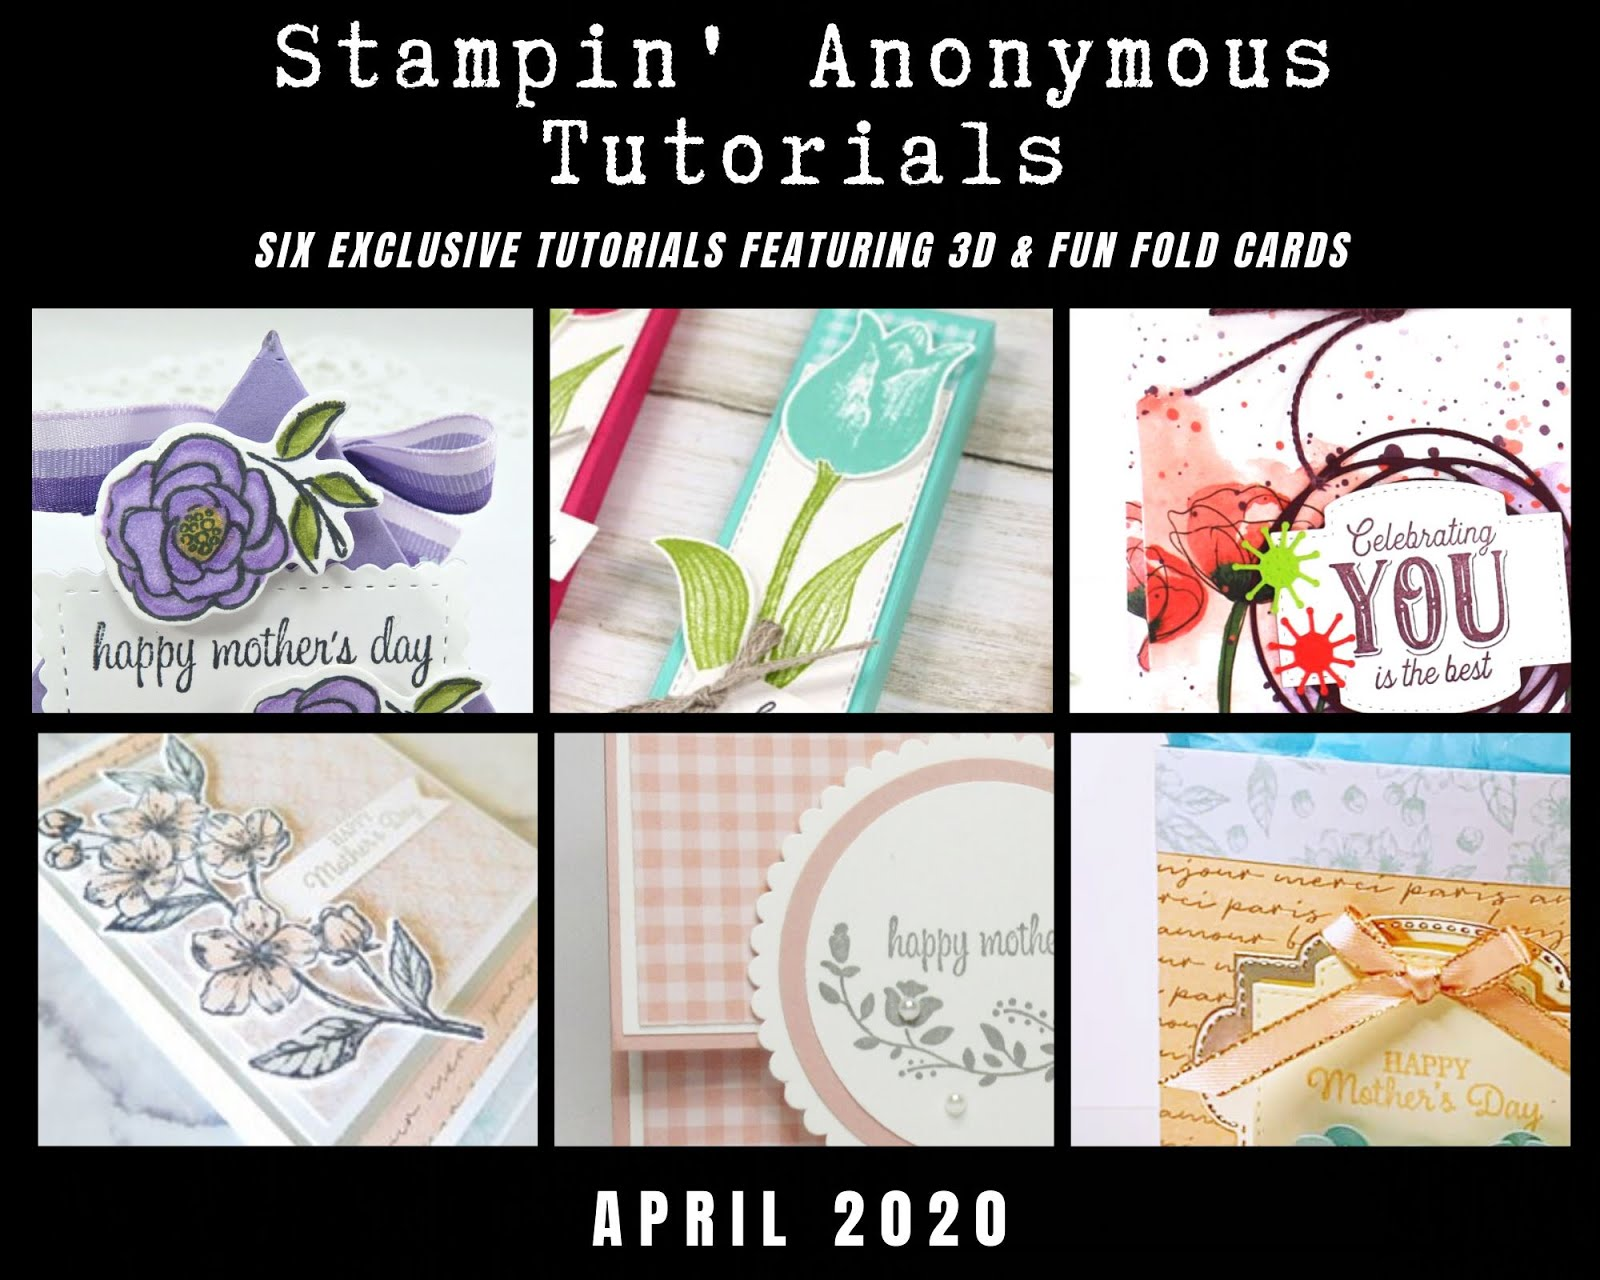 STAMPIN'ANONYMOUS